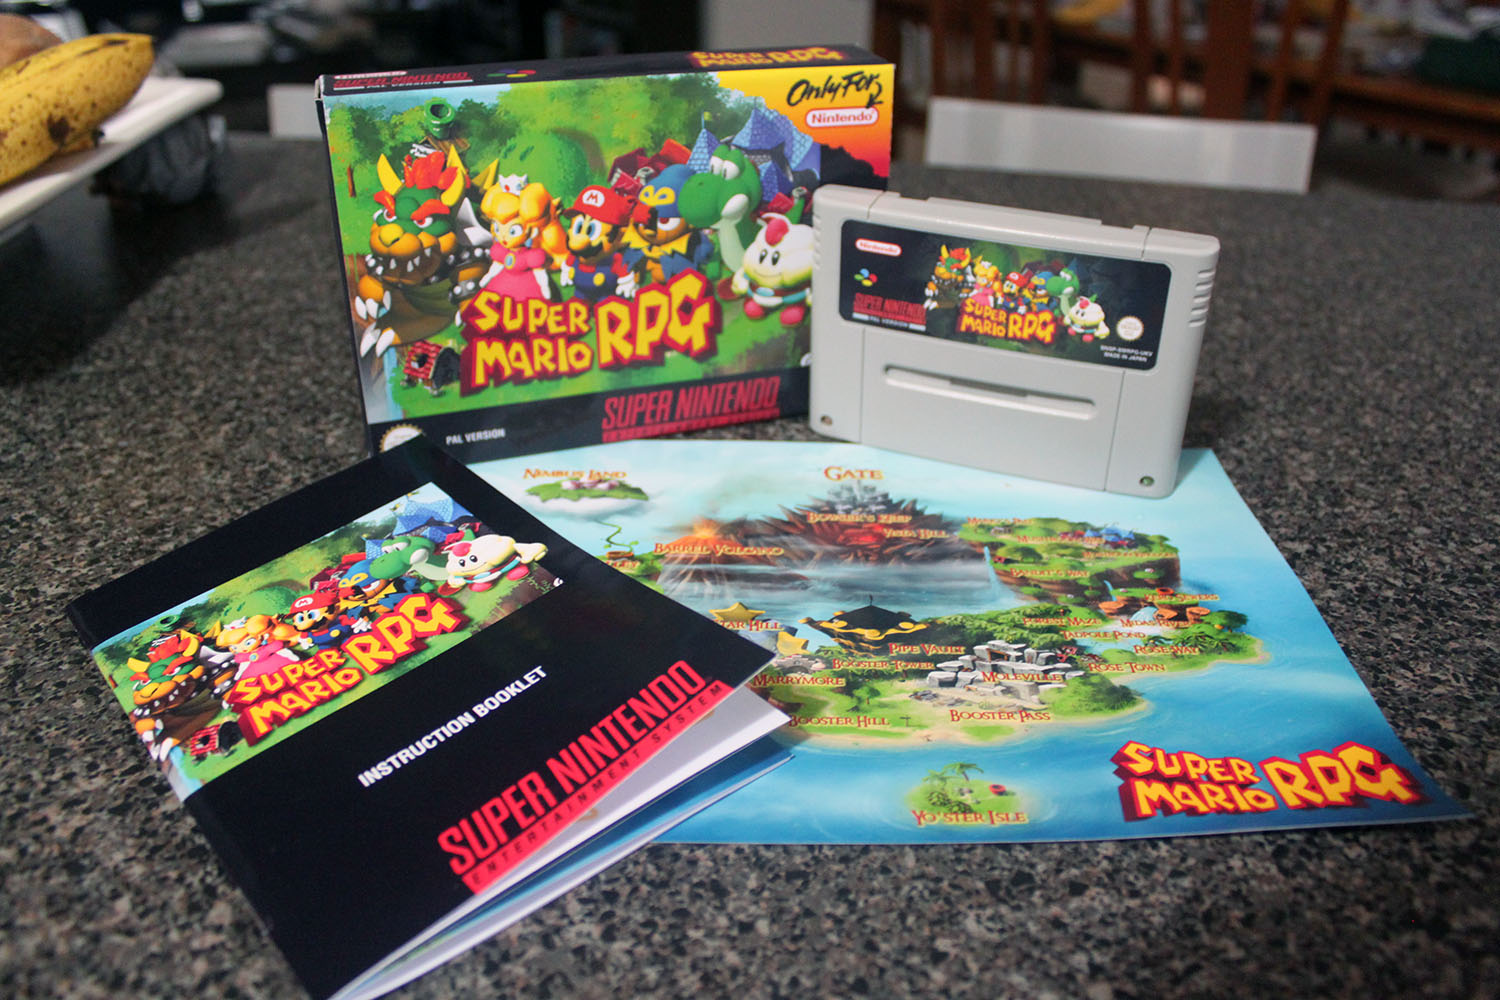 Super Mario RPG PAL  - Complete